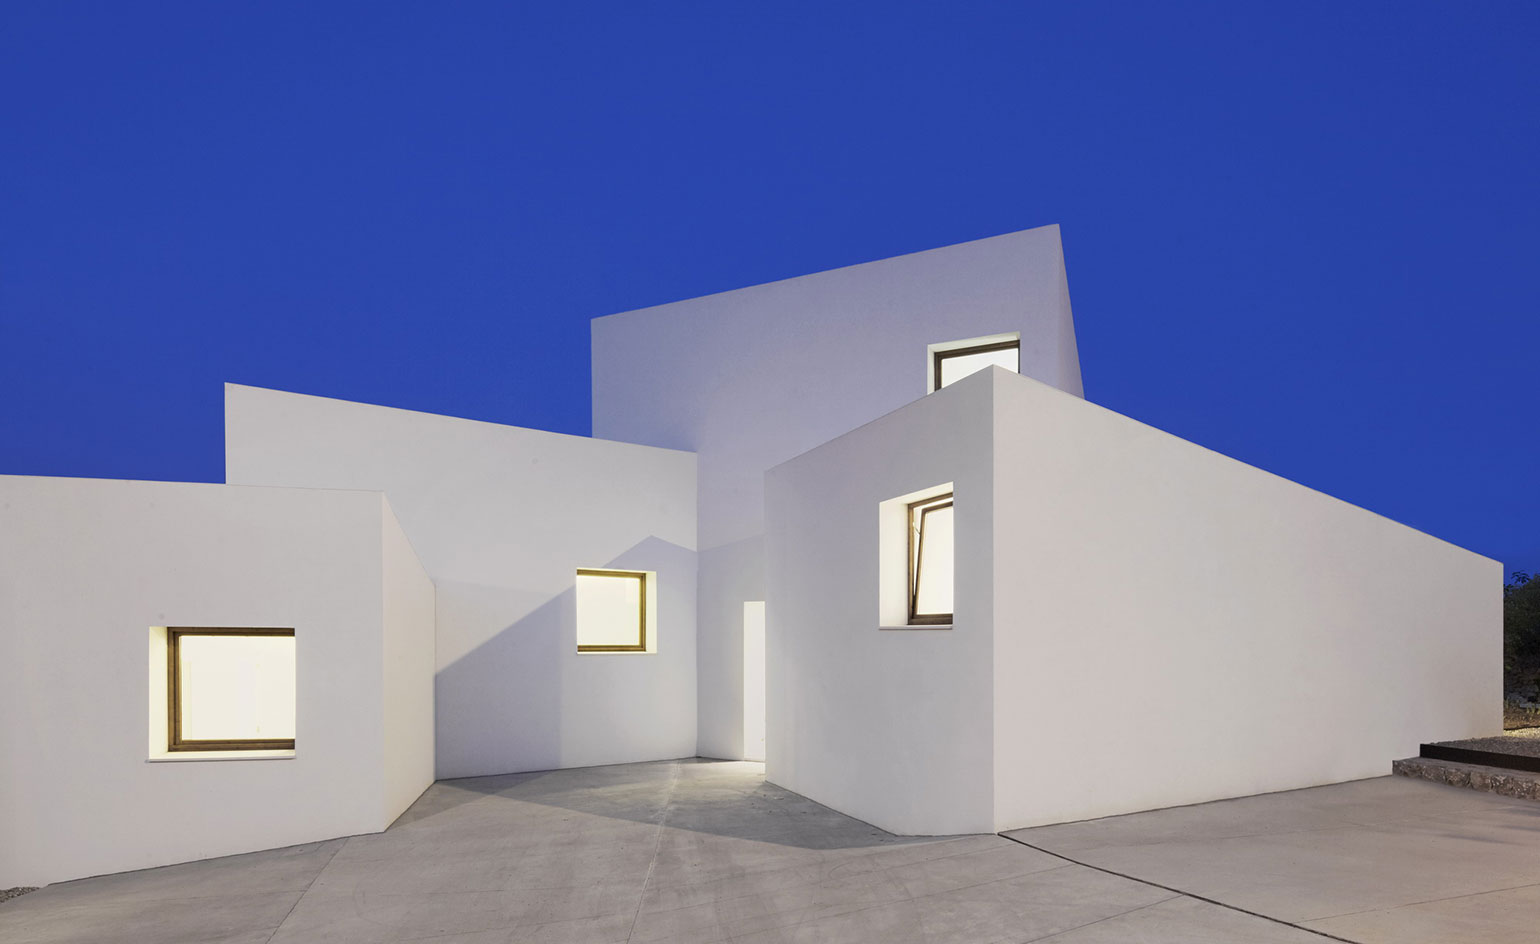 Ohlab 39 s minimalist house mm wallpaper for Minimalist house wallpaper